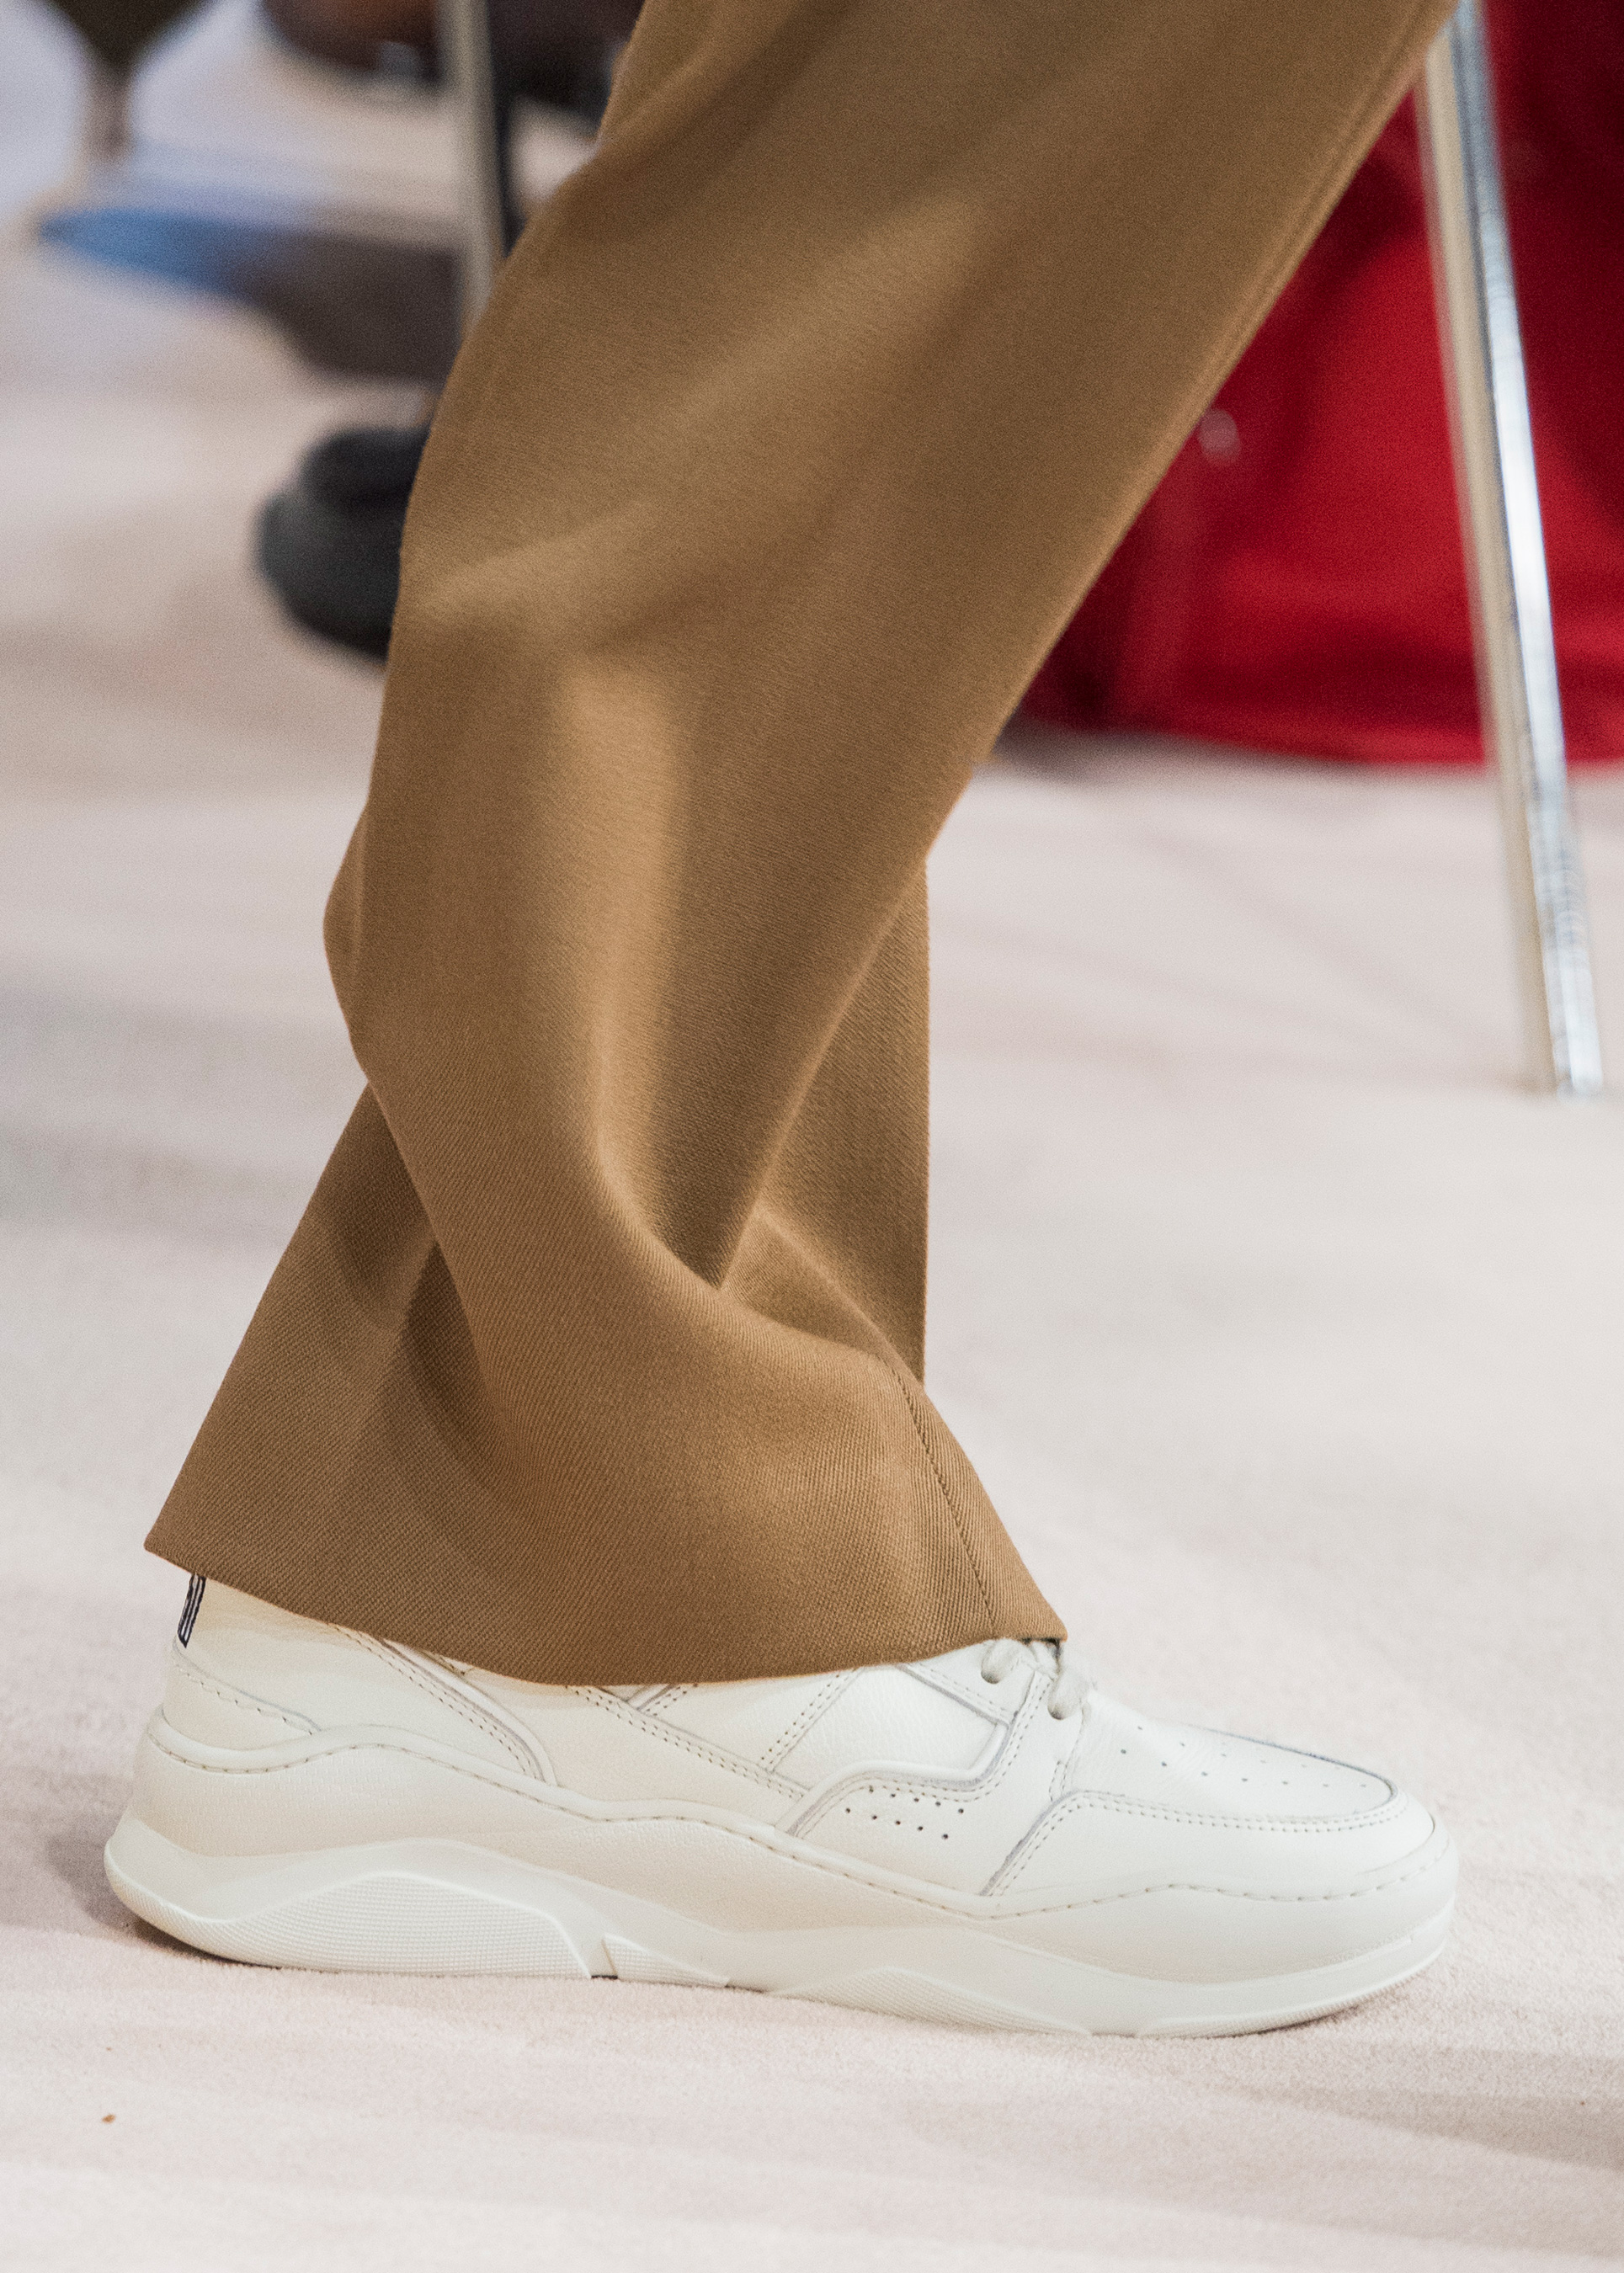 Ami Alexandre Mattiussi Fall 2019 Men's Fashion Show Details